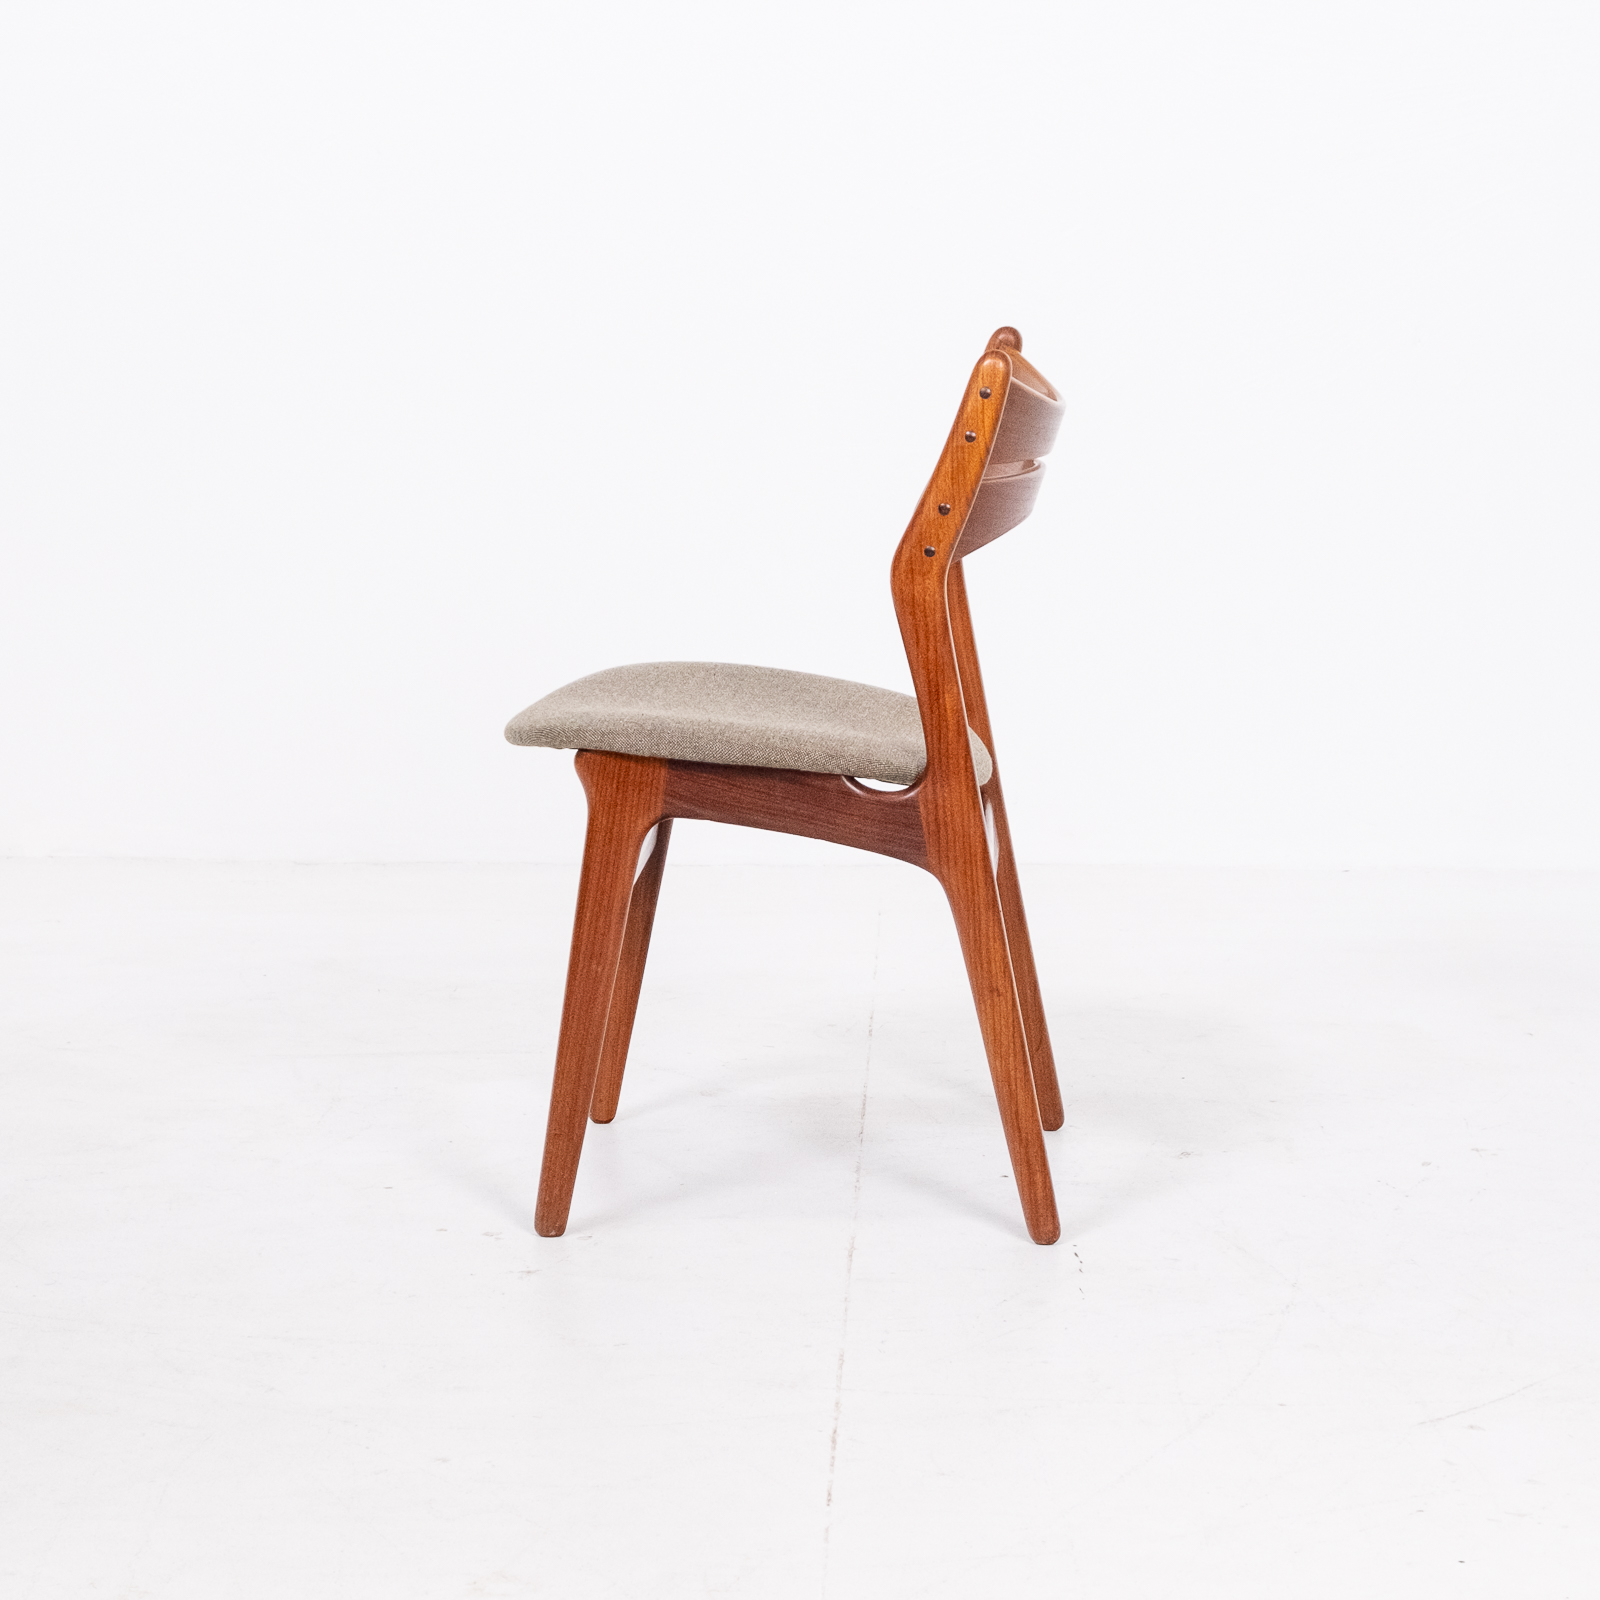 Set Of 2 Model 130 Dining Chairs By Erik Buch For Christian Christensens Mobelfabrik In New Instyle Upholstery And Teak, 1960s, Denmark 07